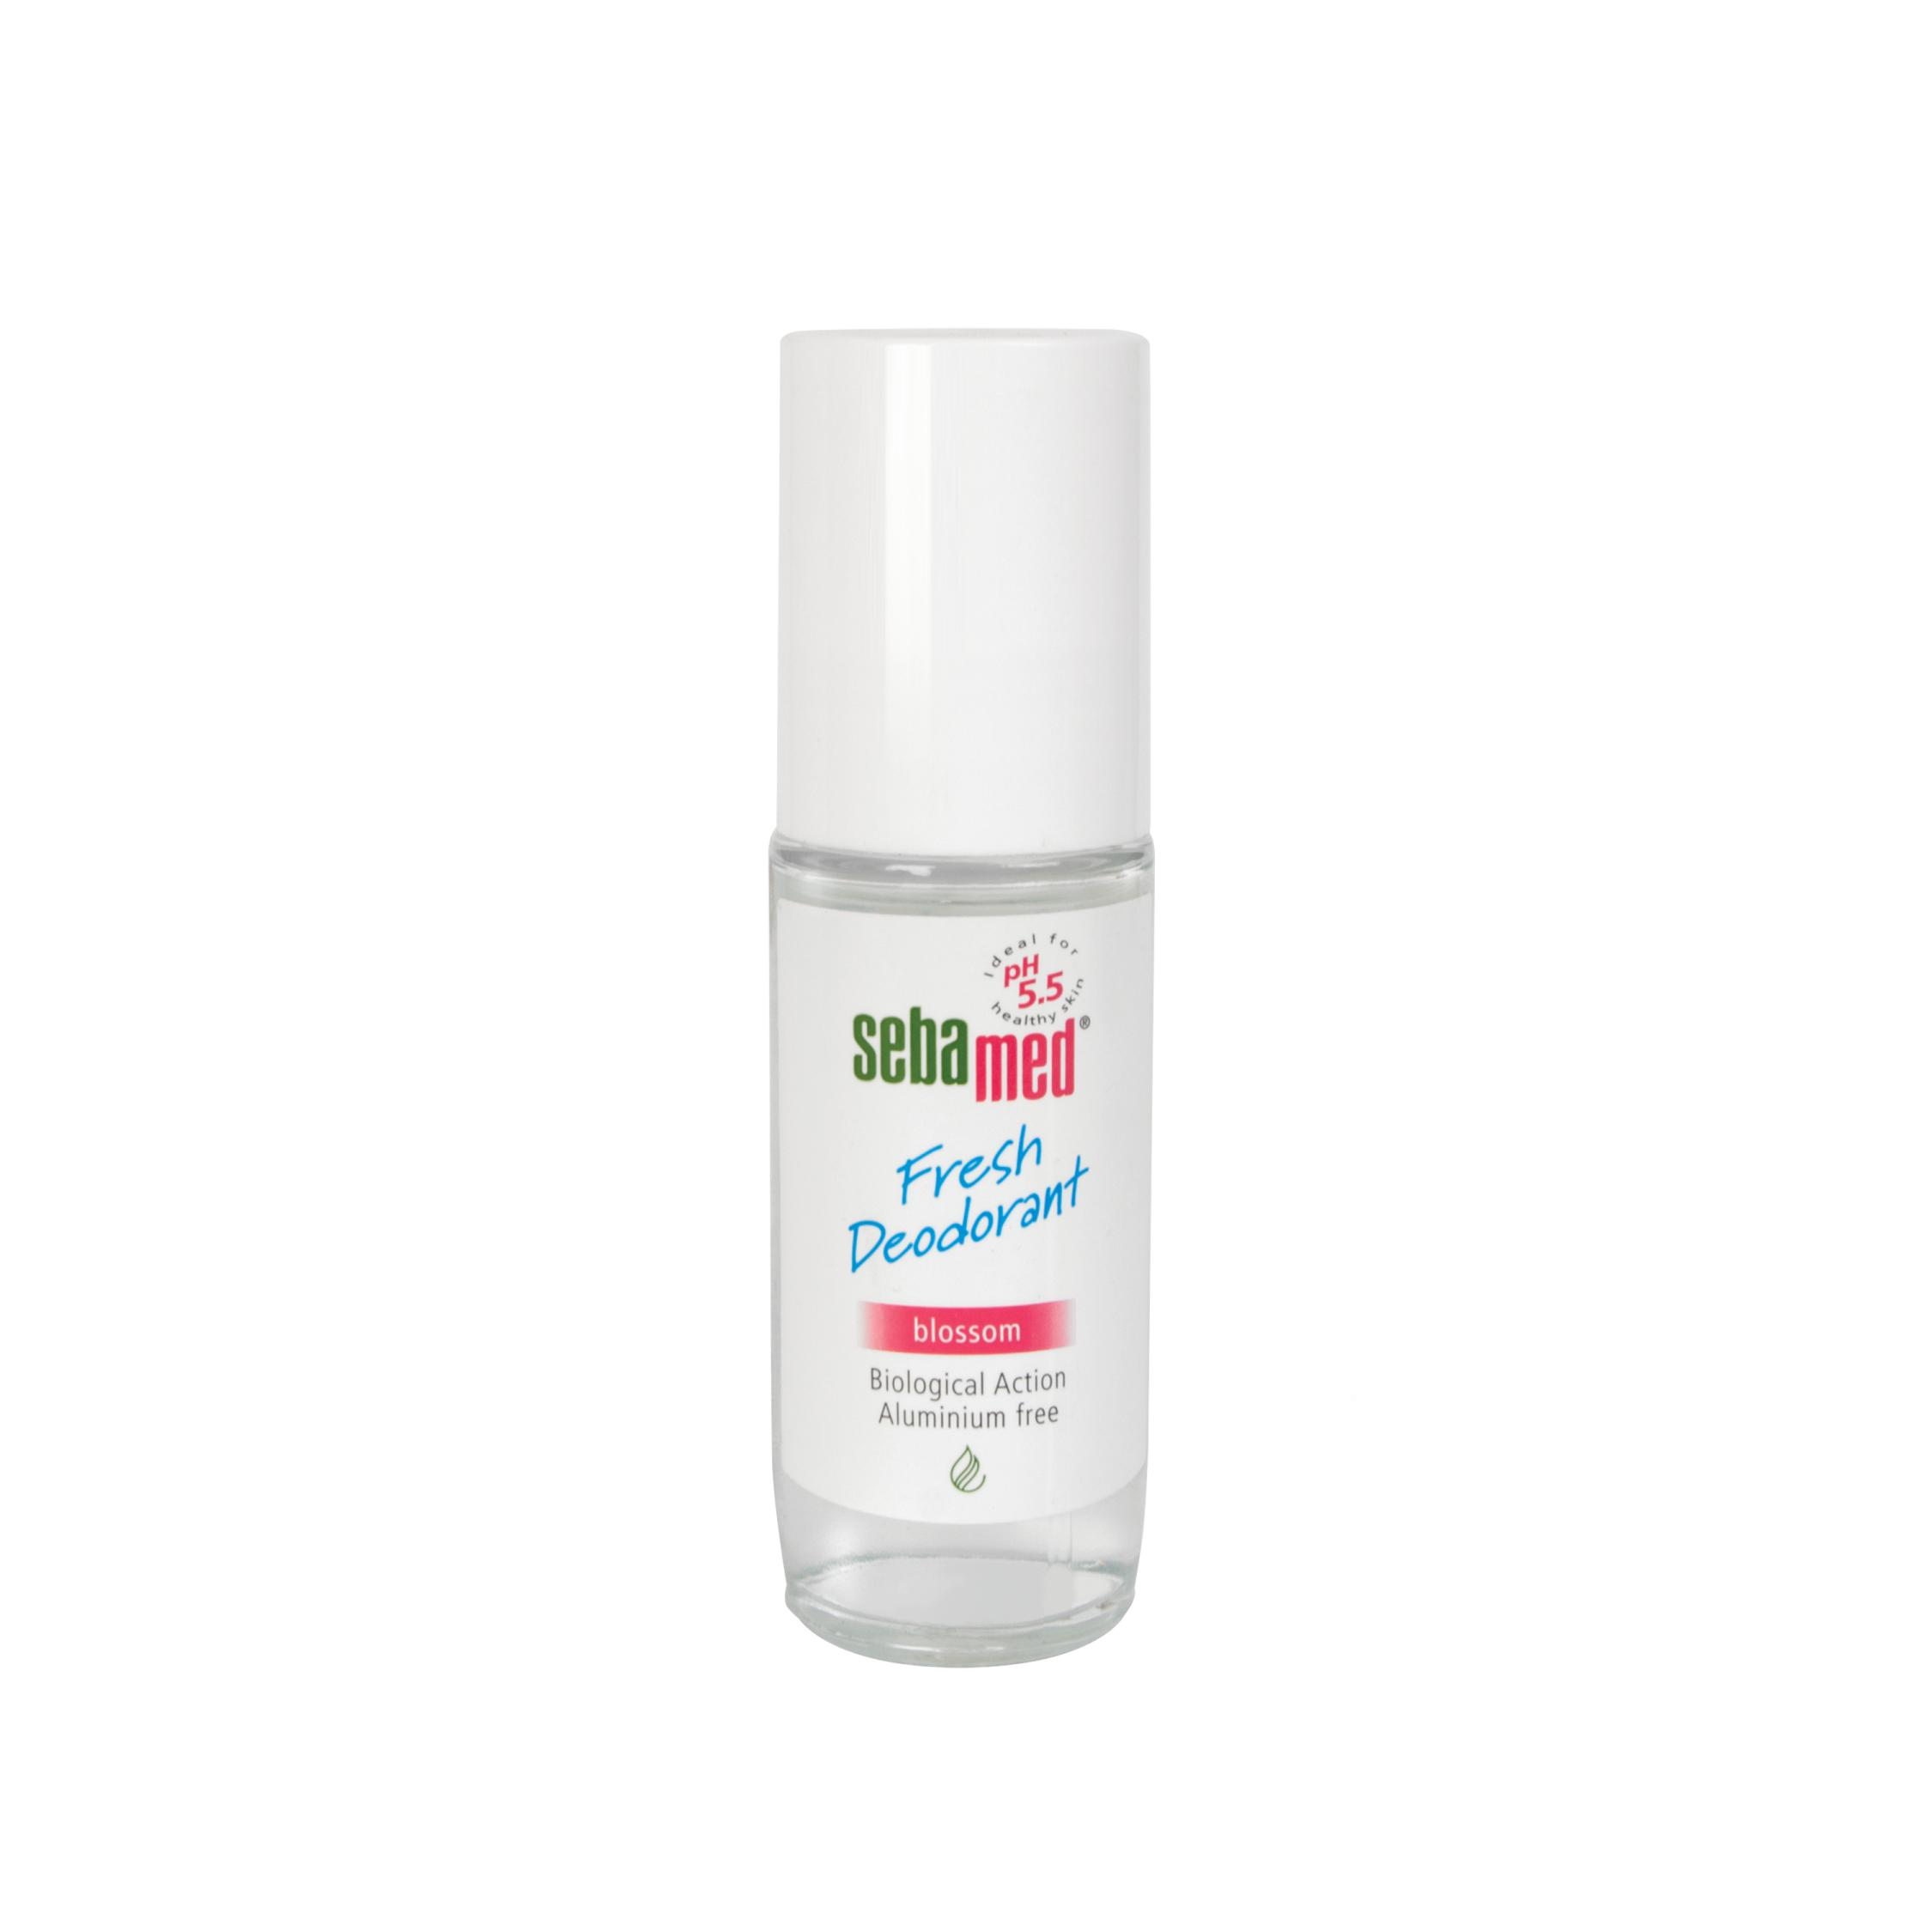 Sebamed Blossom Deodorant 50ml Roll on